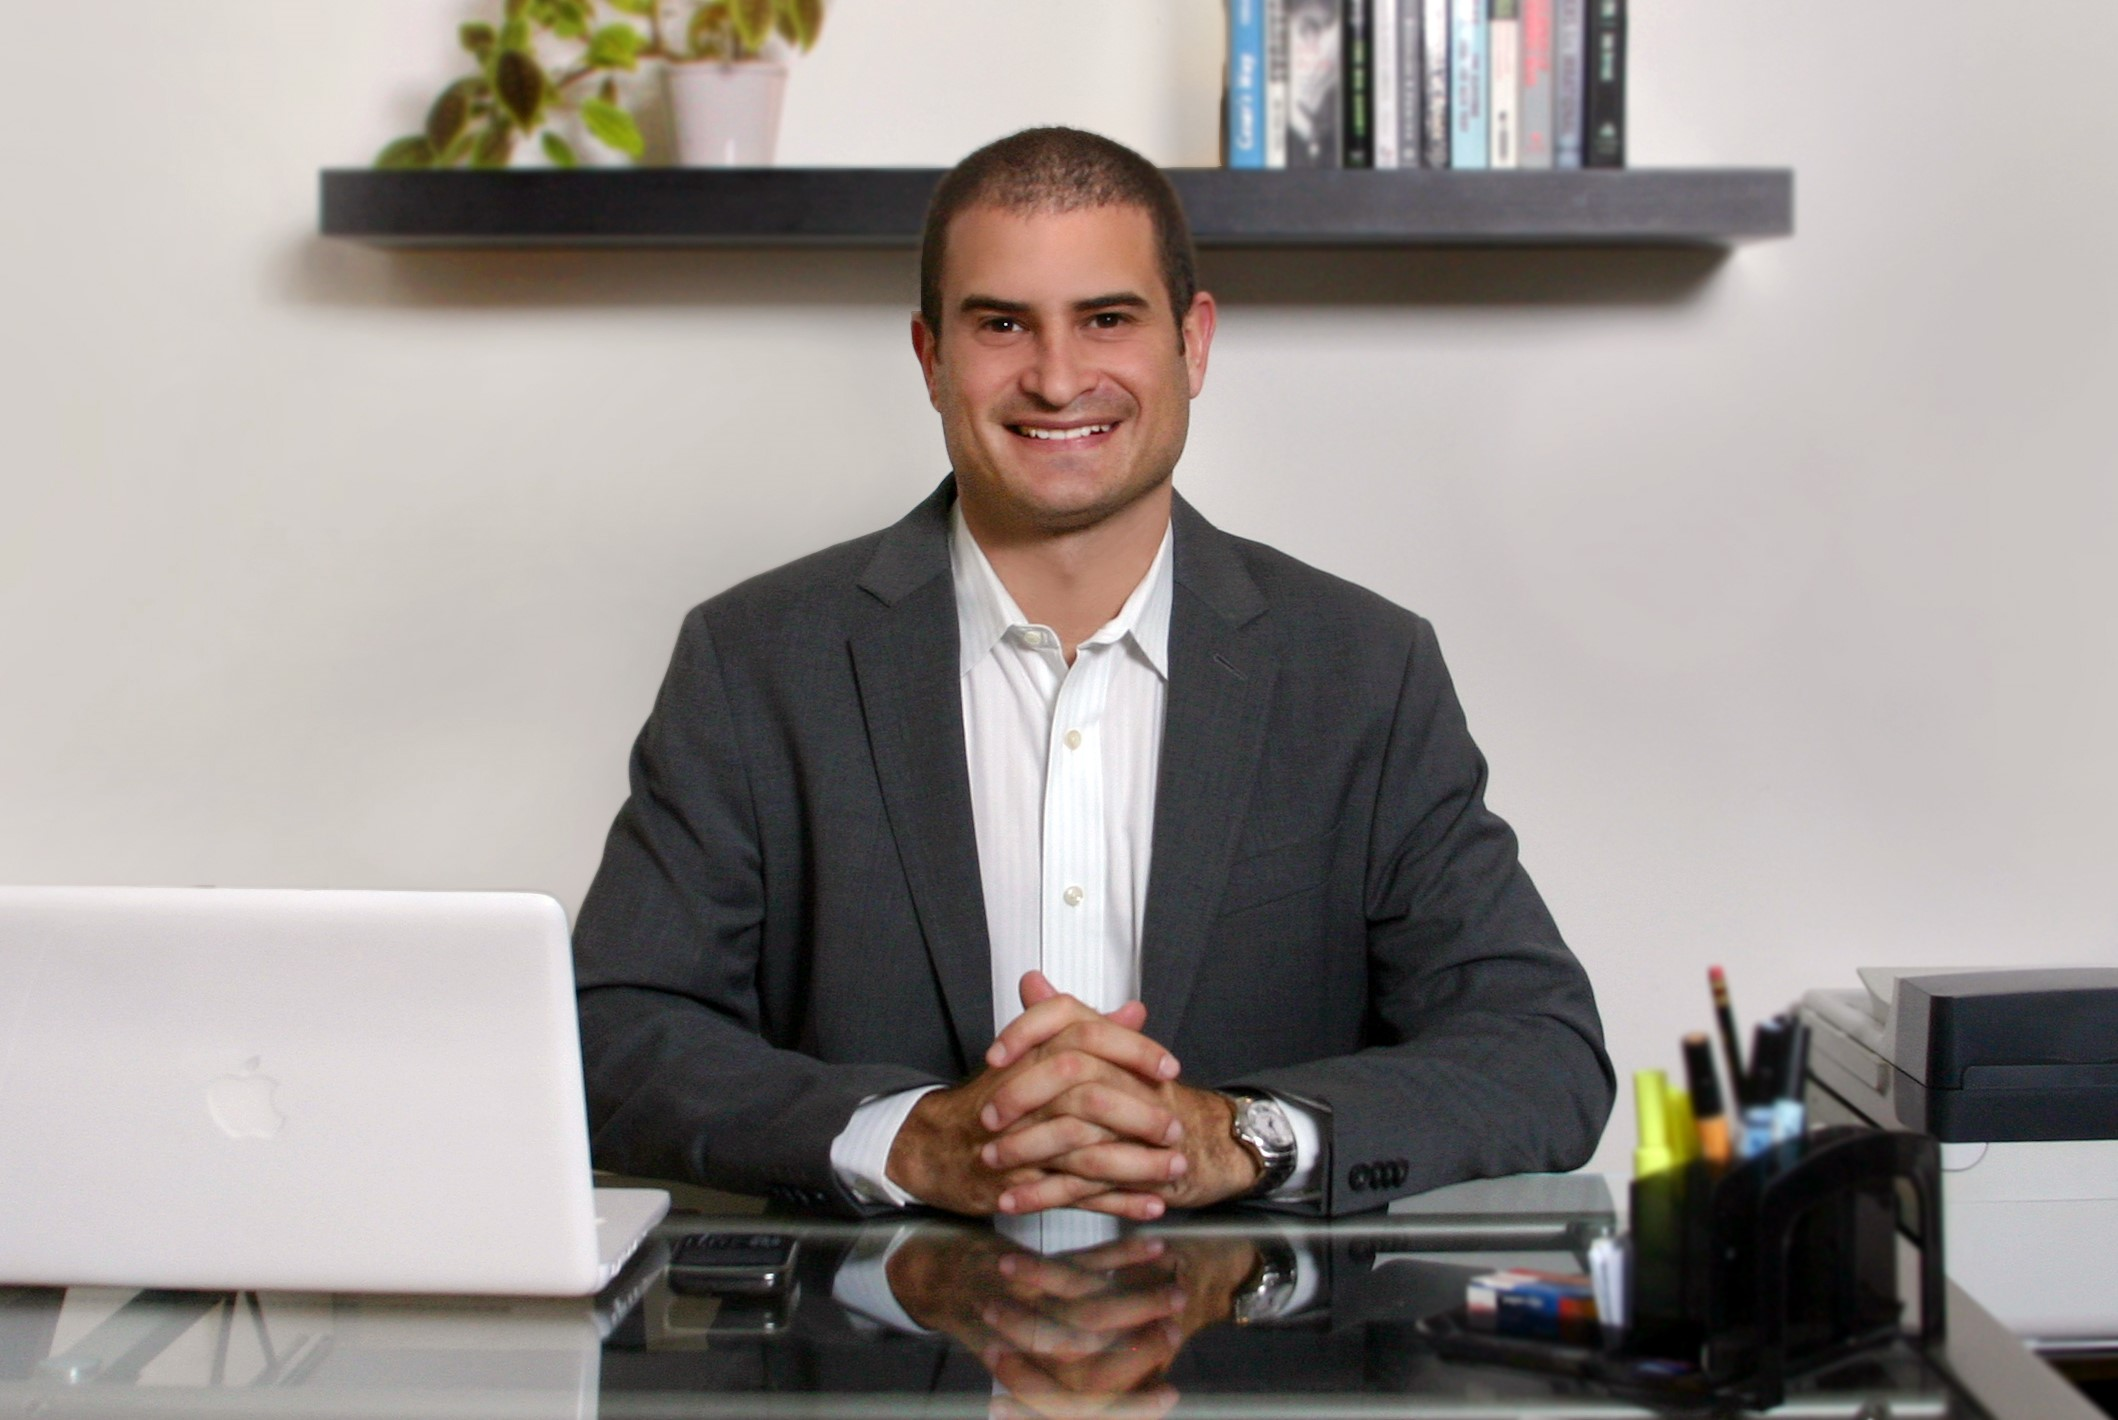 This Entrepreneur Went From $75 In His Bank Account To $3M In Revenue. Here's How